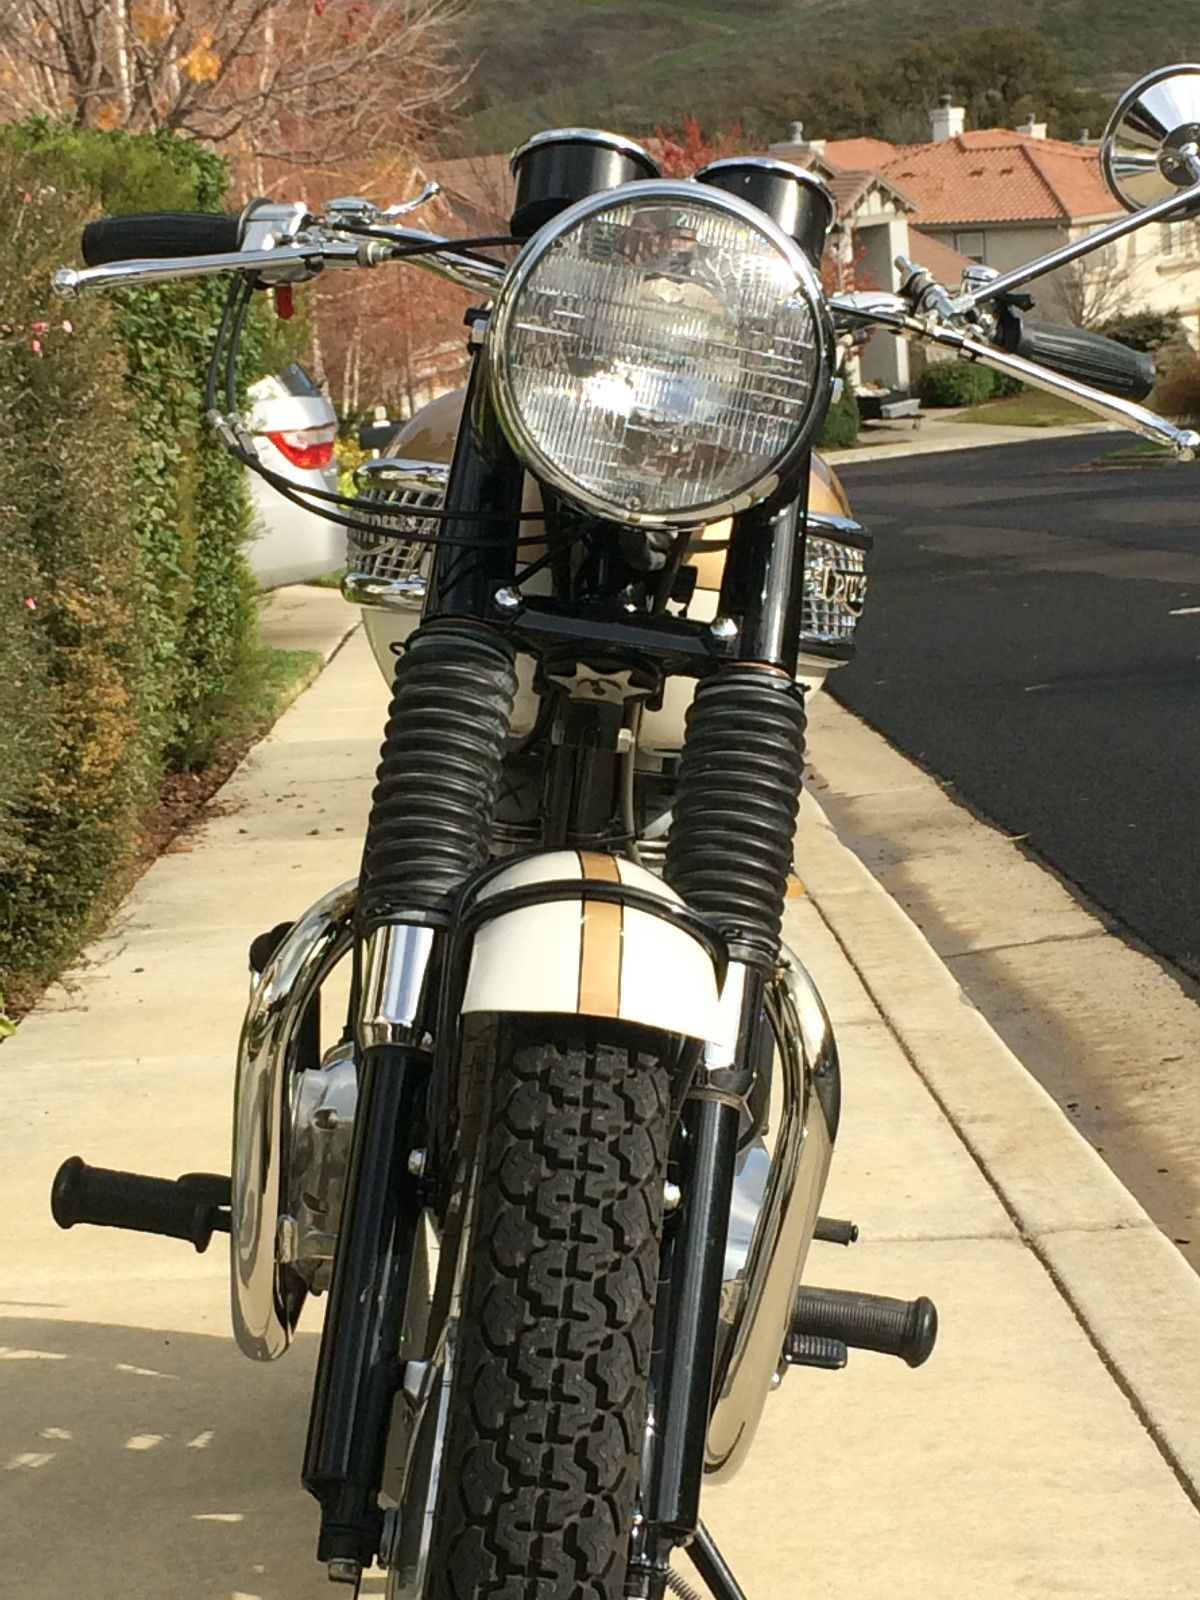 Triumph Bonneville - 1964 - Headlight, Forks, Fender, Footrest and Headers.